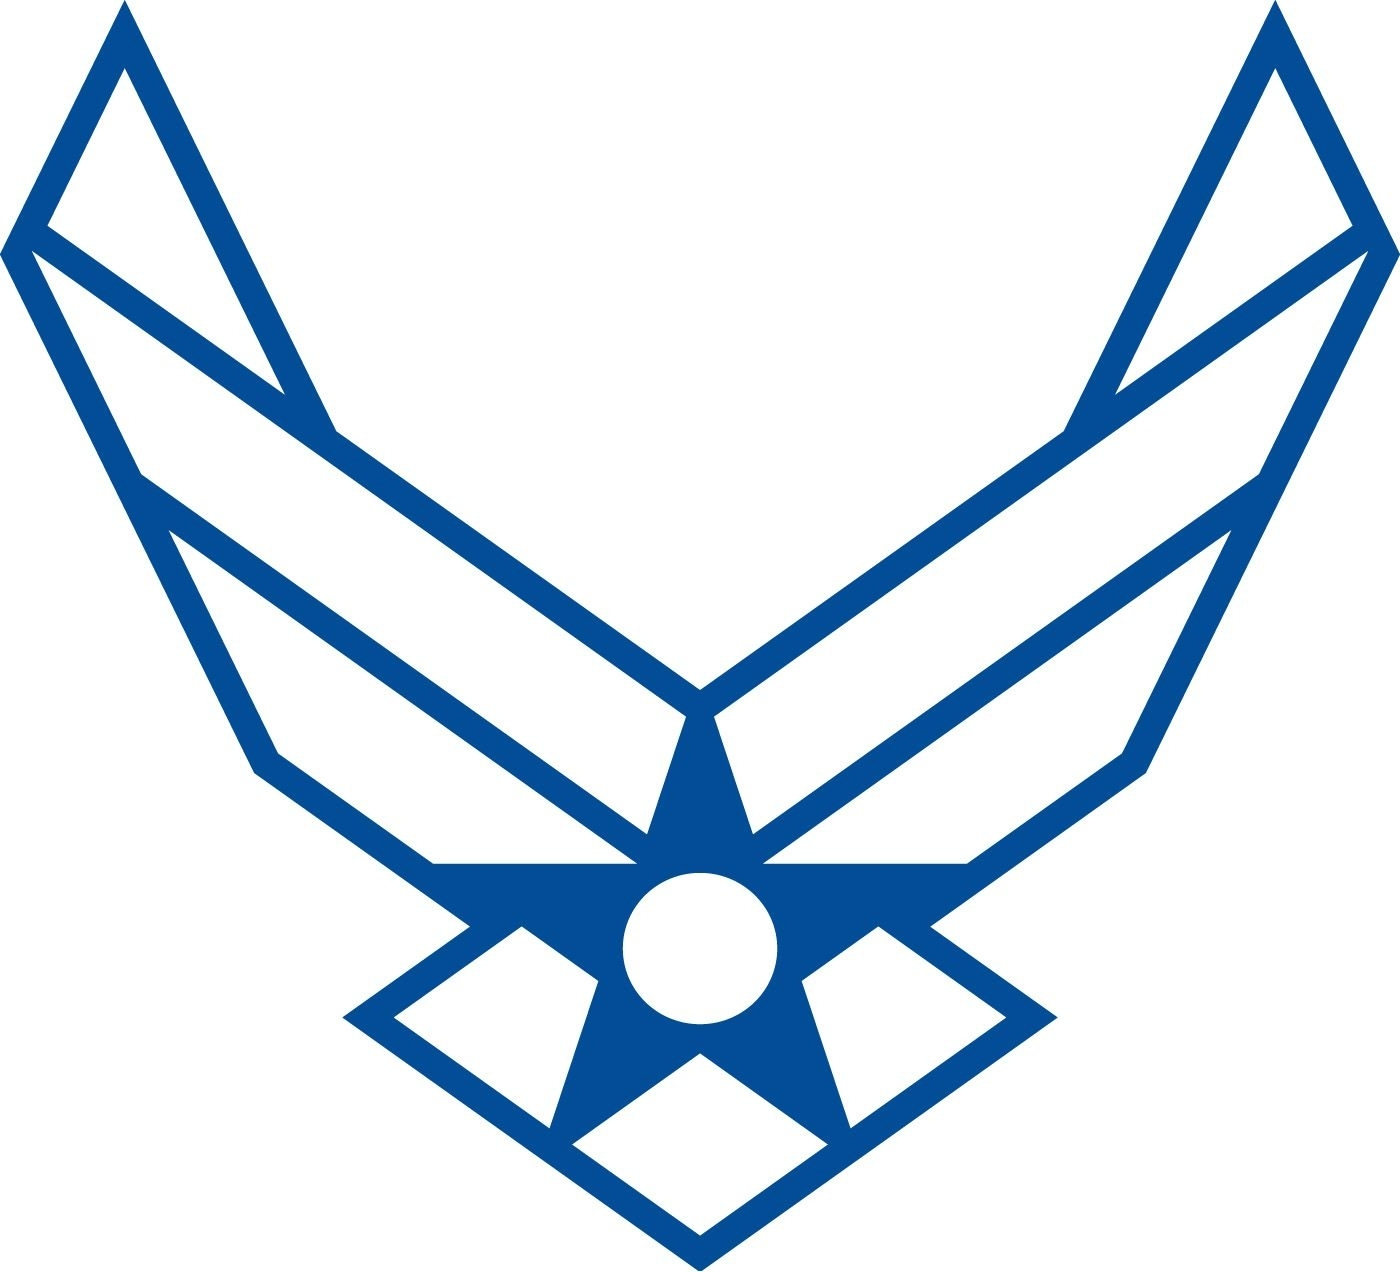 air force logo clip art - clipart best - clipart best | air force